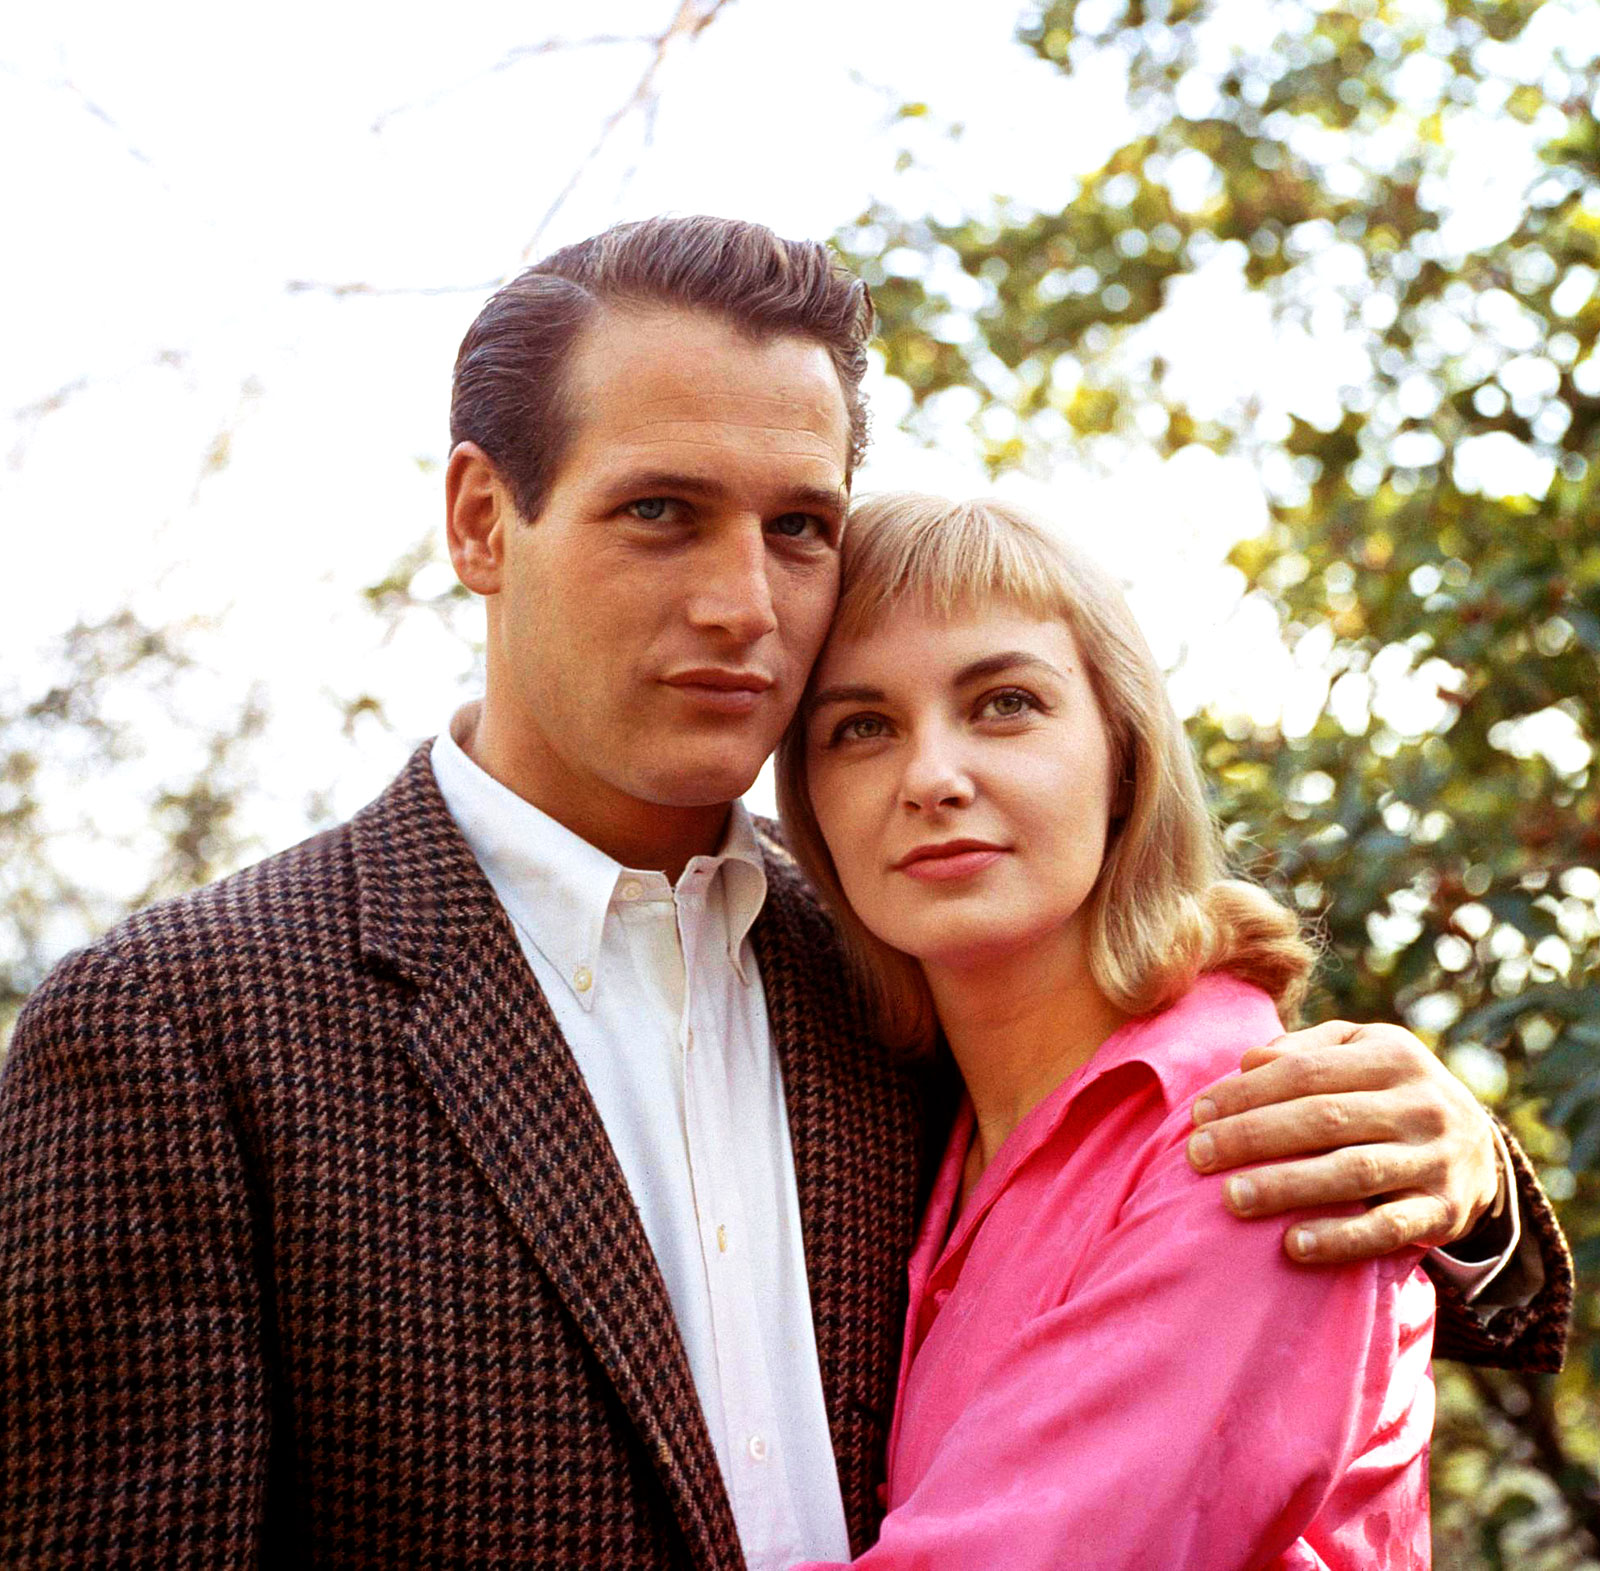 paul-newman-and-joanne-woodward-young